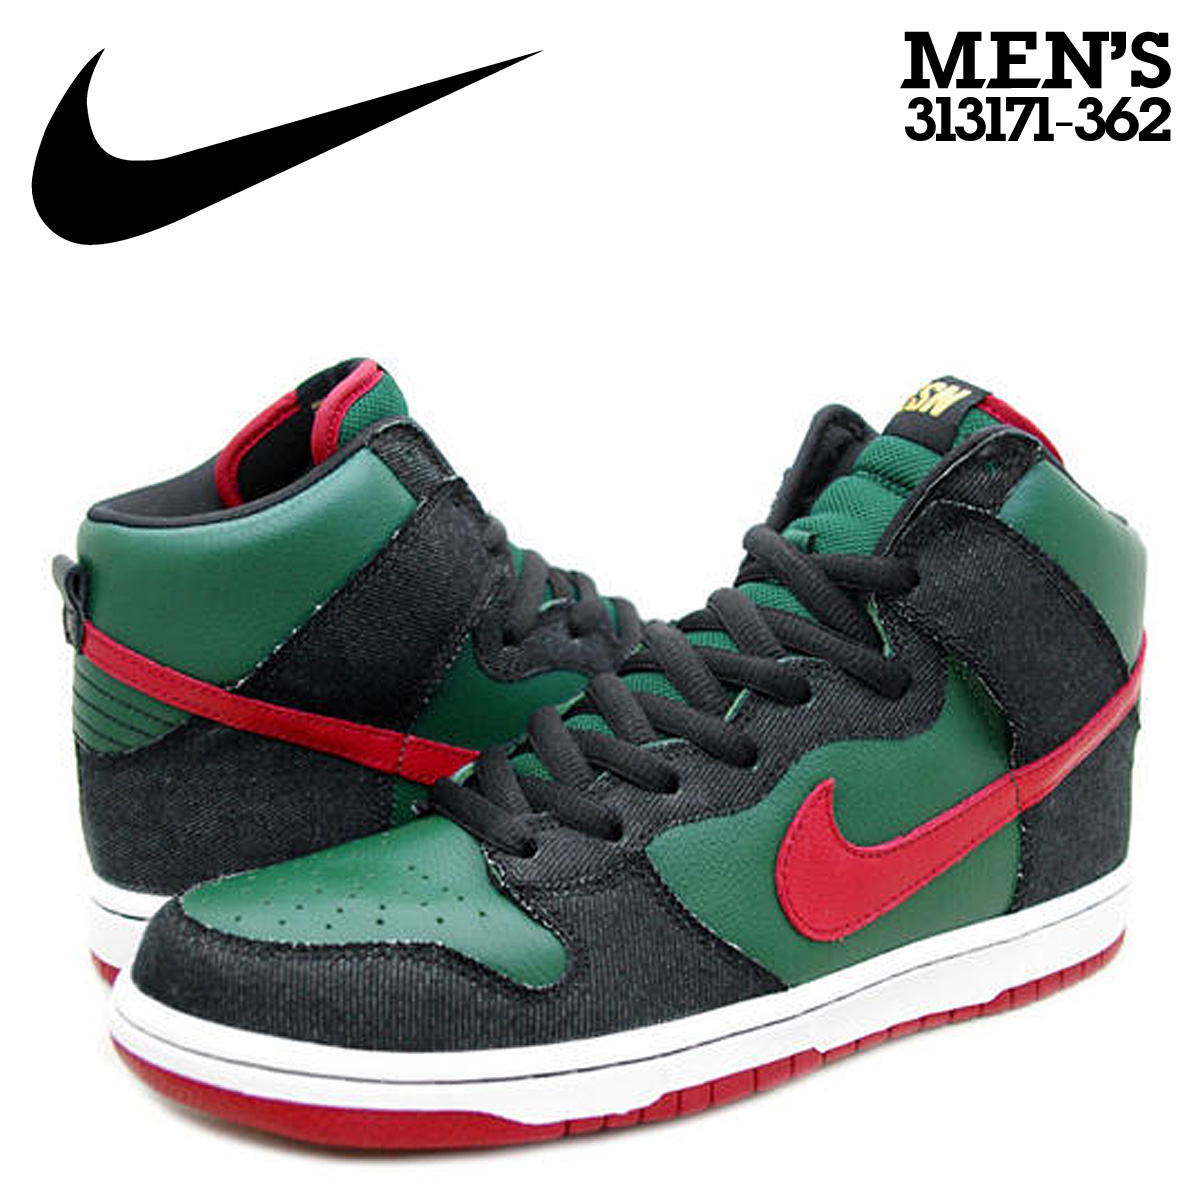 cheap for discount 72671 0f5c2 NIKE Nike dunk sneakers DUNK HIGH PREMIUM SB dunk low premium S B  313,171-362 green men